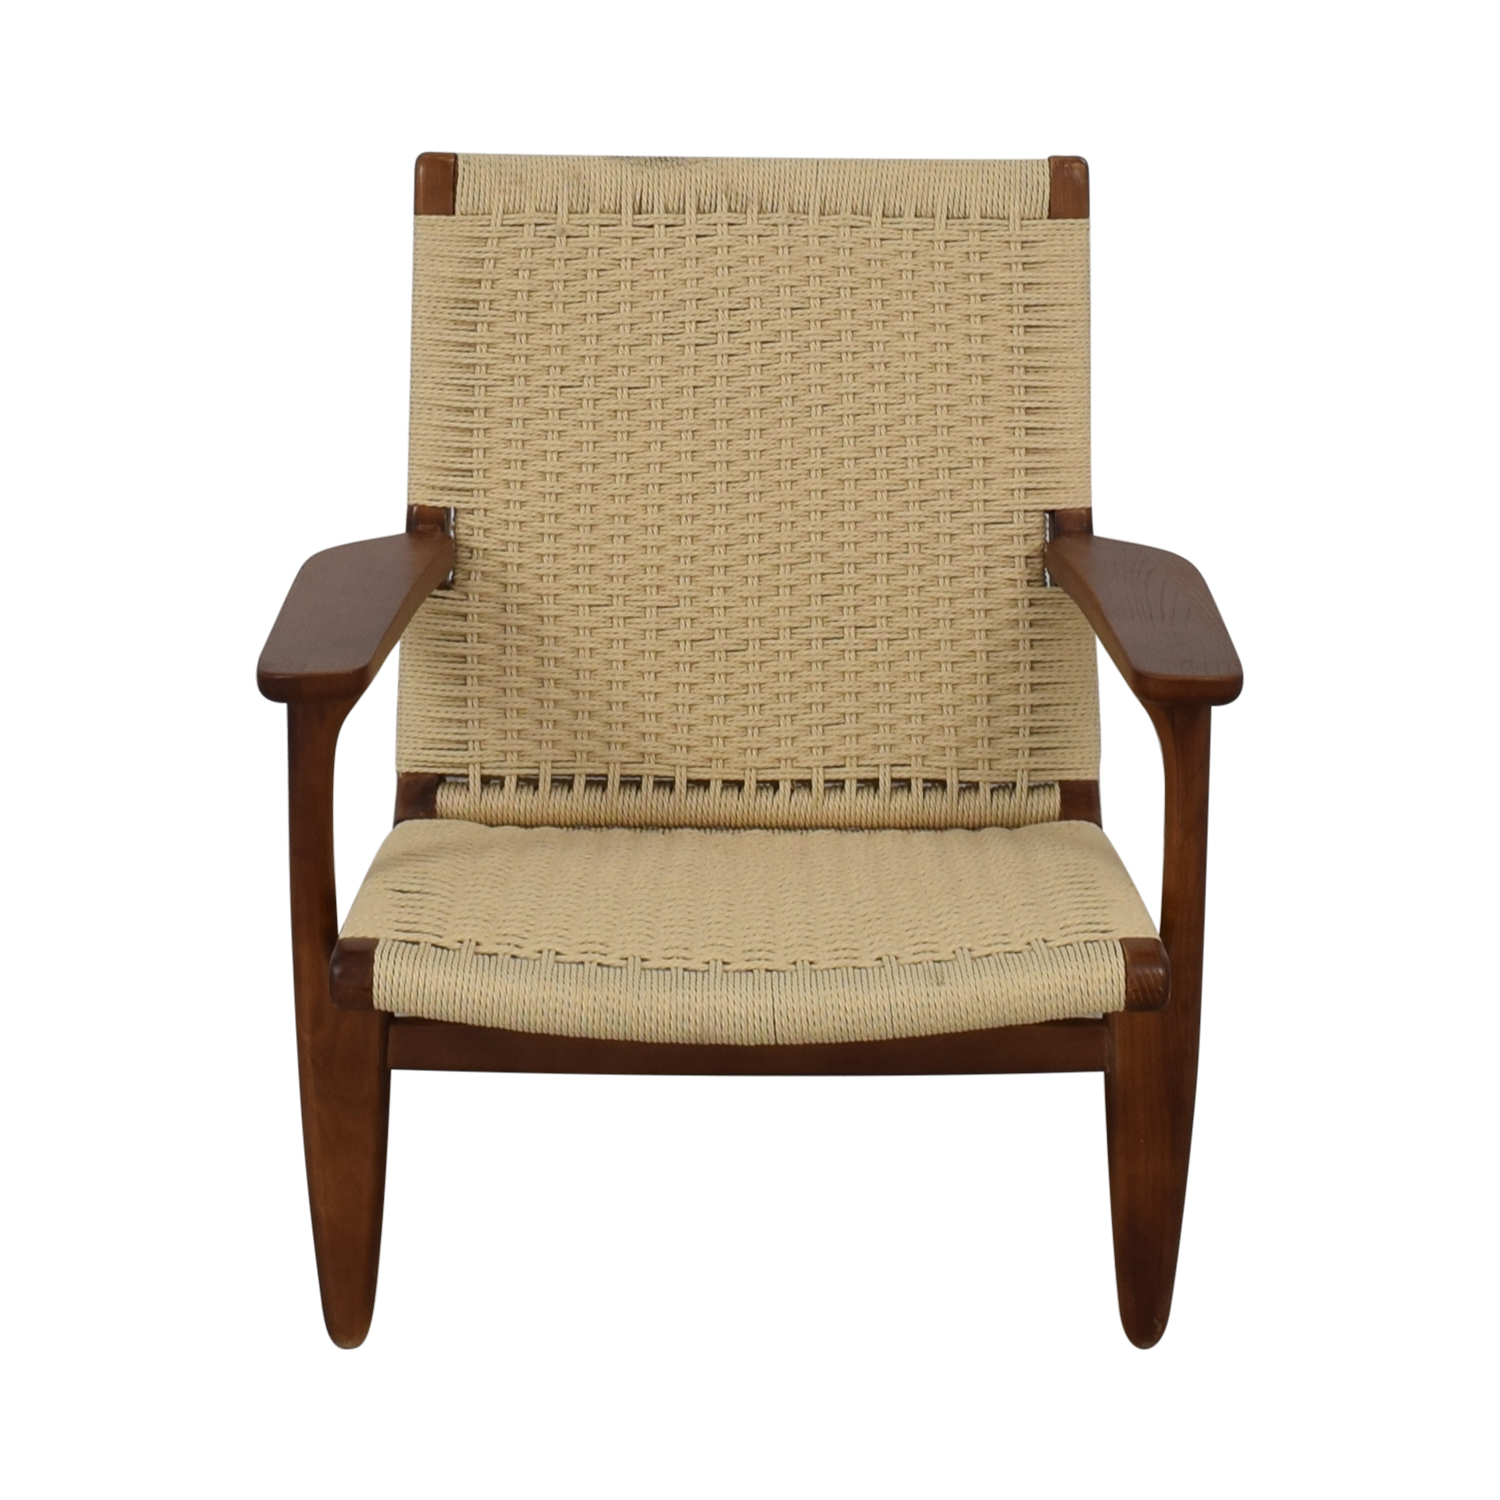 Mid Century Woven Lounger Chair nj